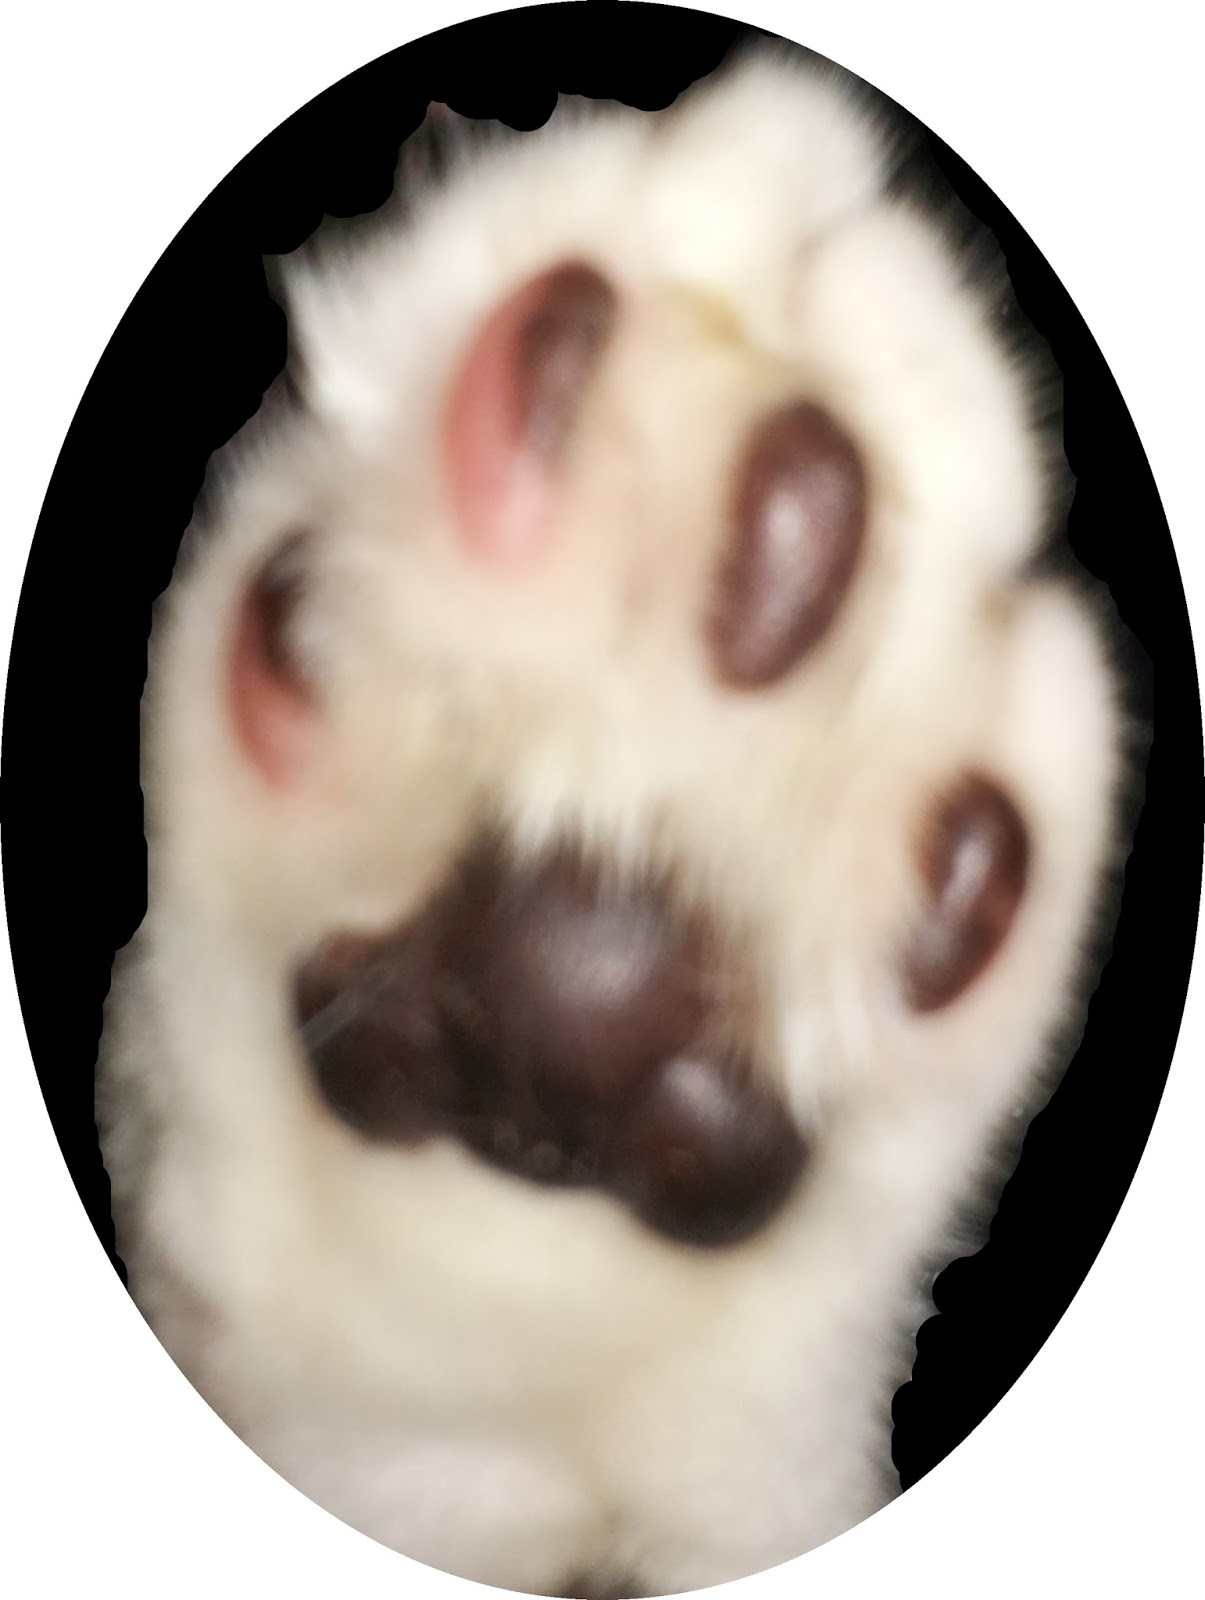 Image of Mr Bumpy's paw.